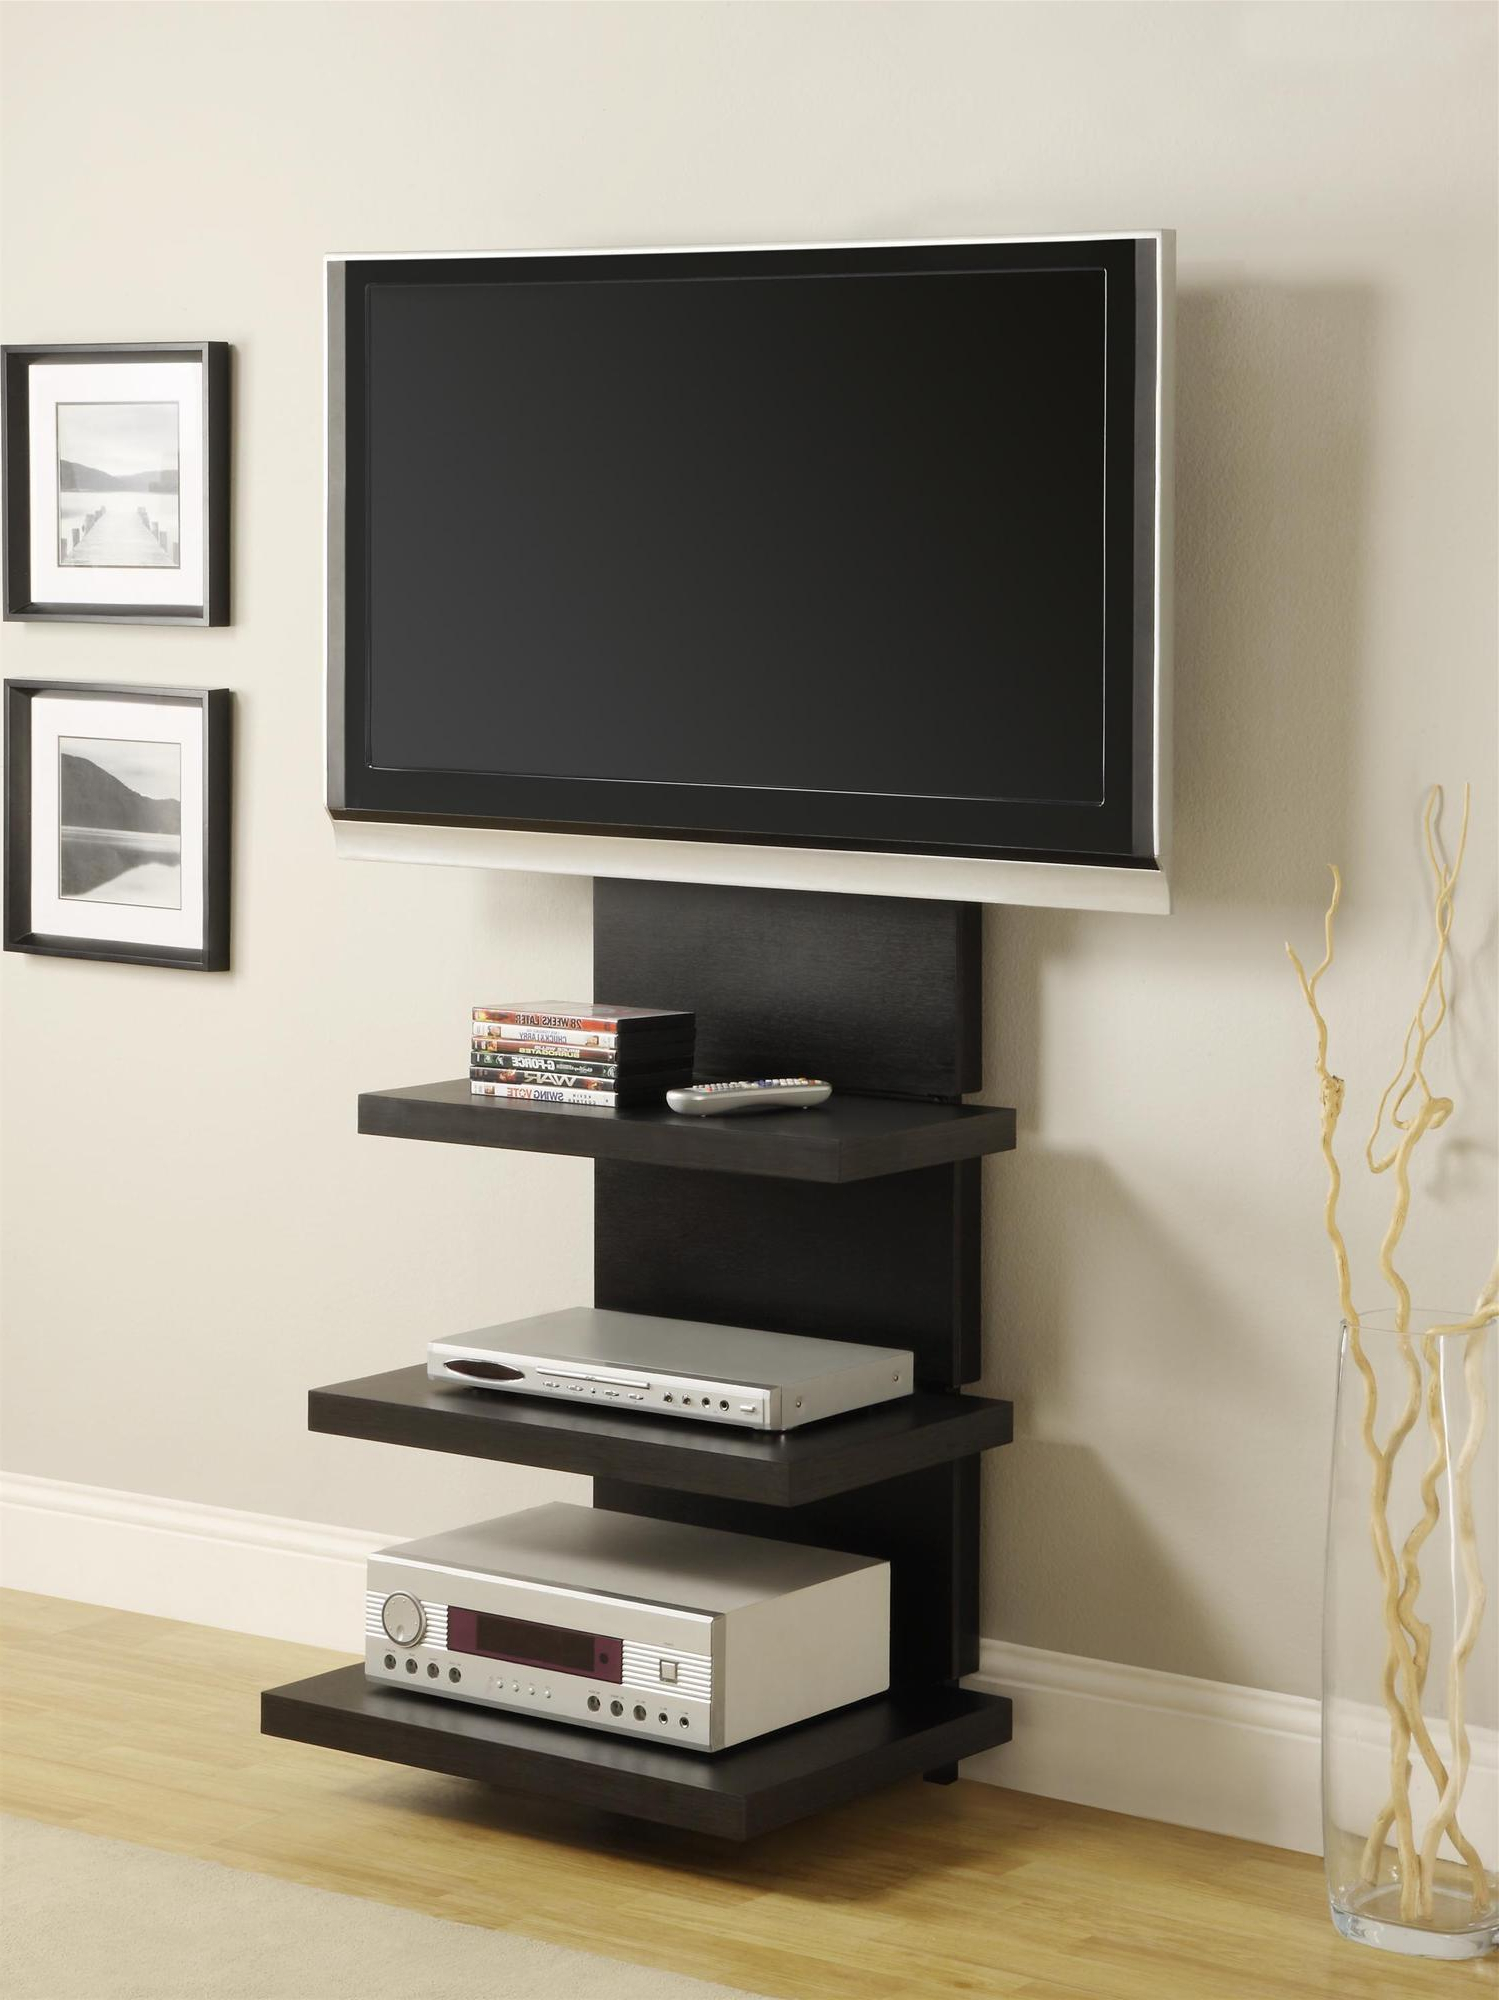 Sleek Tv Stands Pertaining To Latest Design A Sleek New Space For Your Home Theater Without The Hassle Or (Gallery 10 of 20)